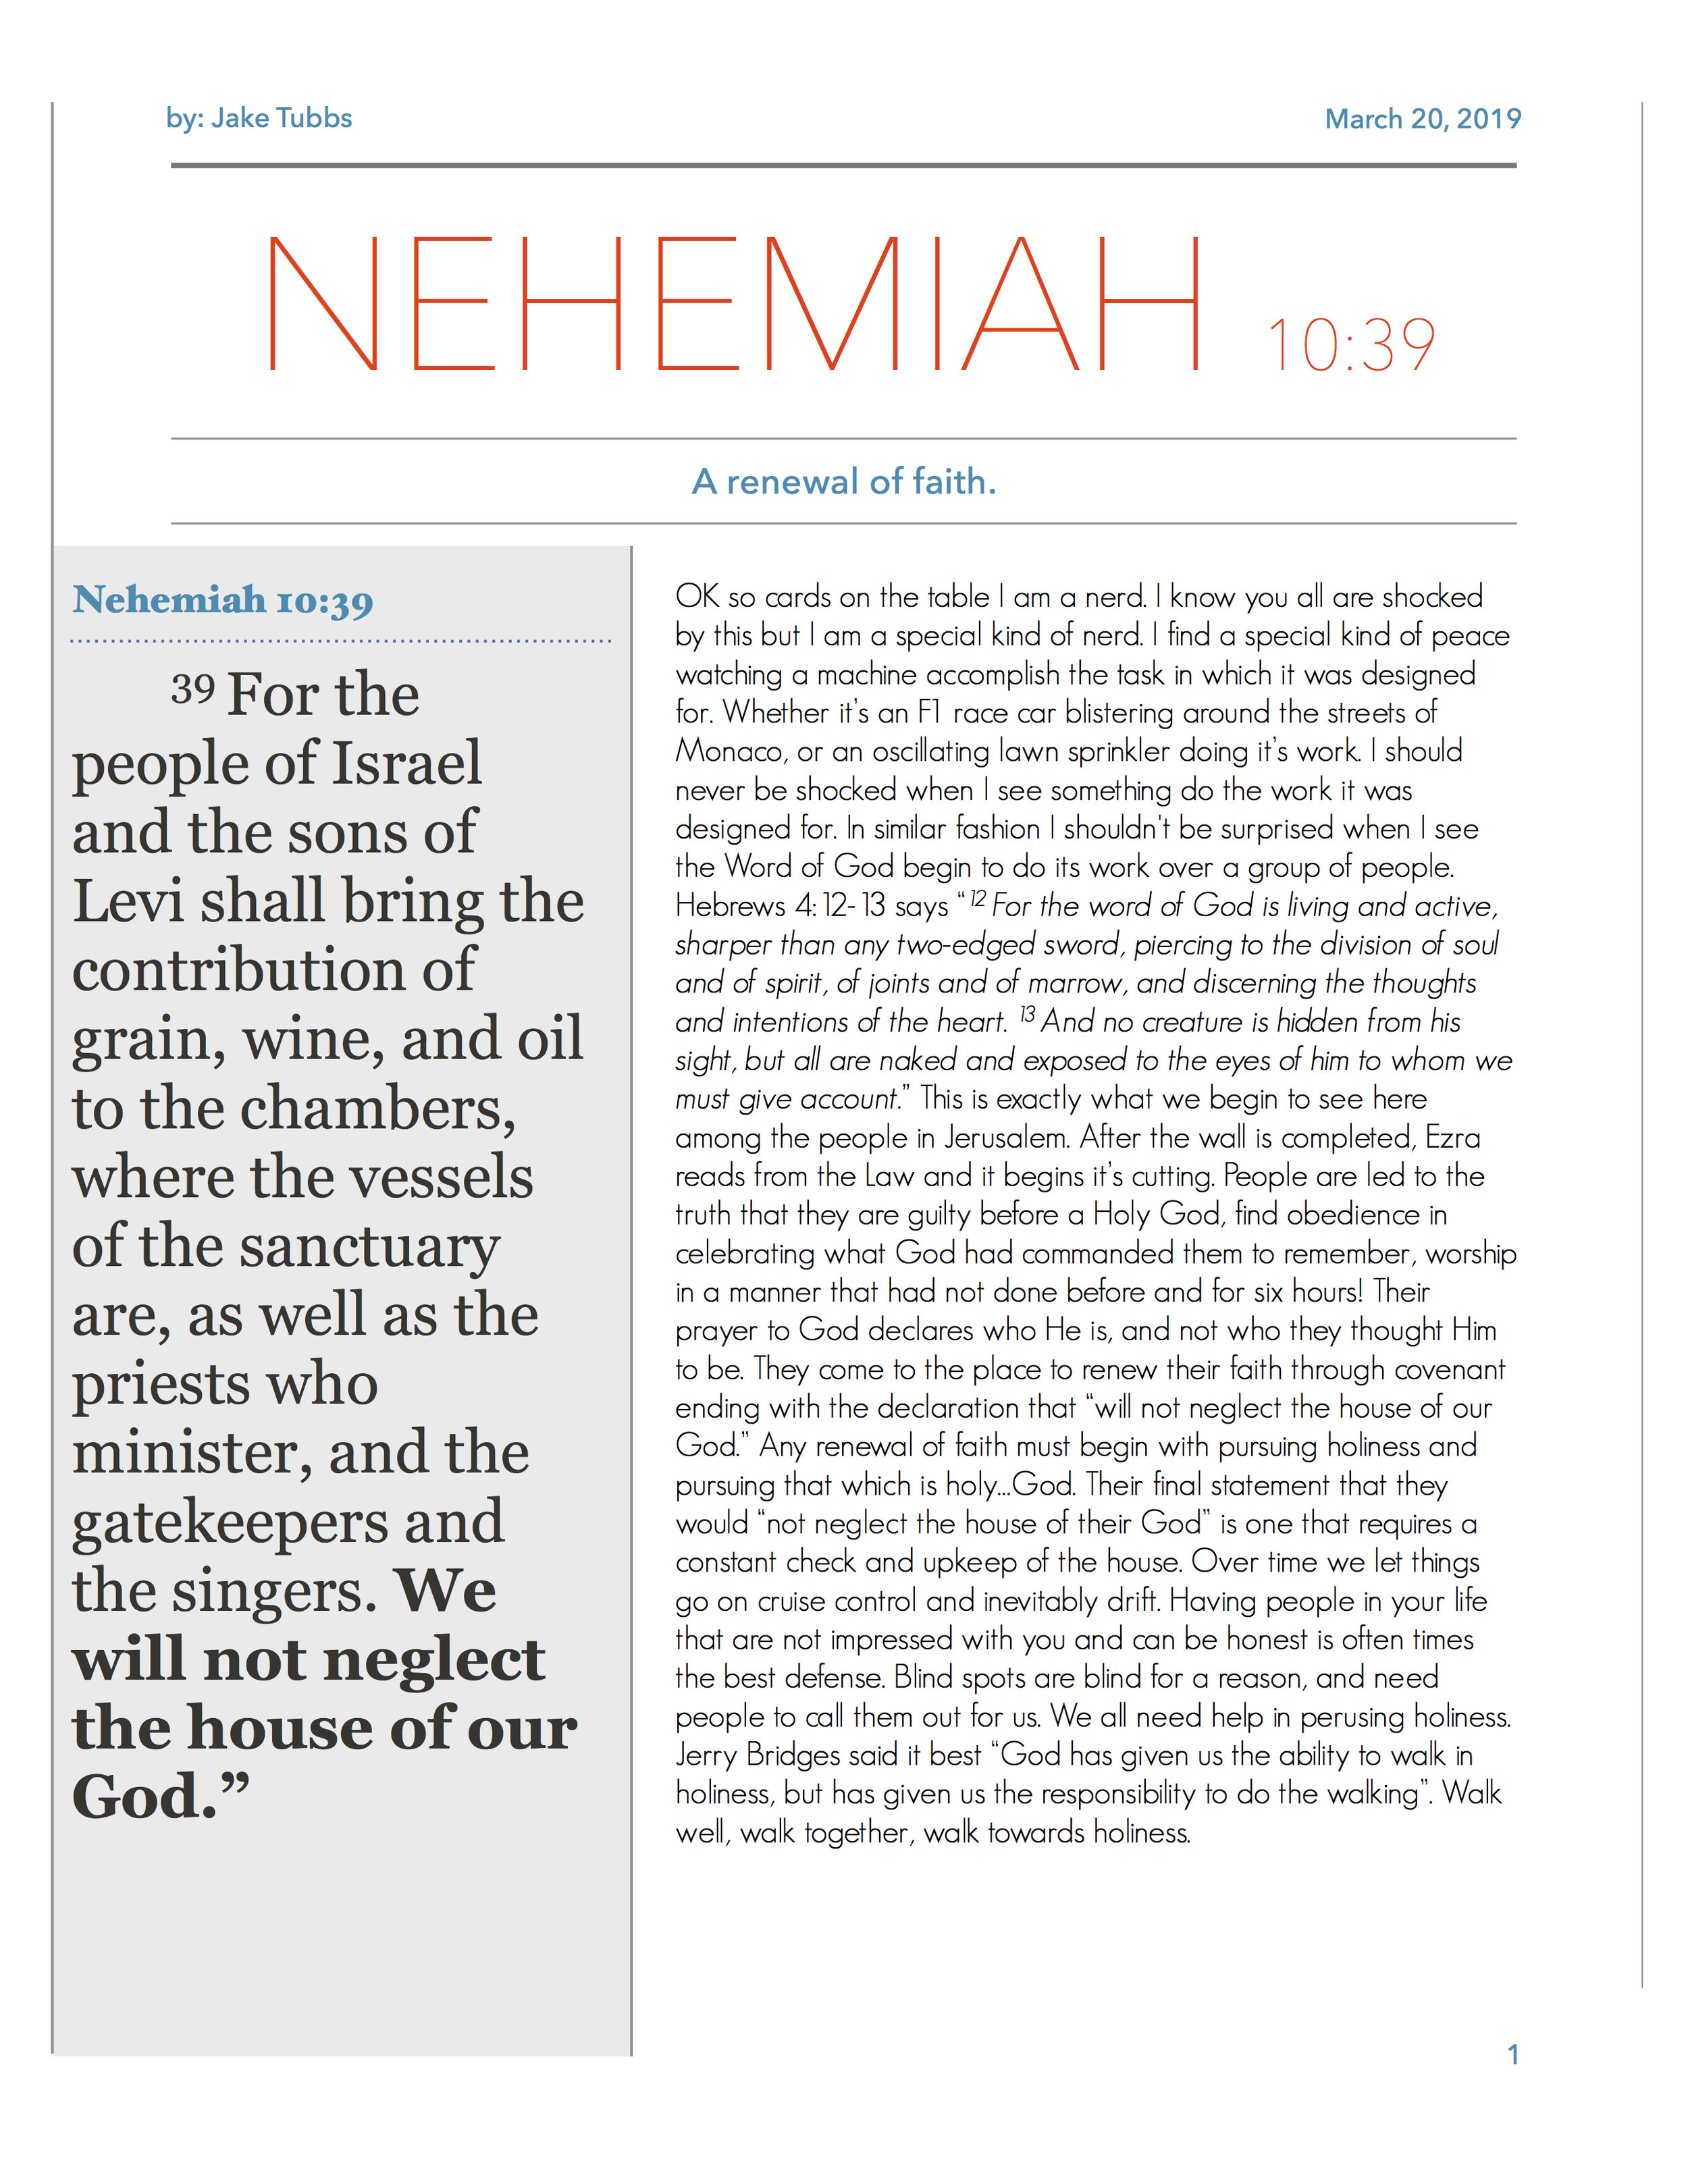 Nehemiah article.jpg